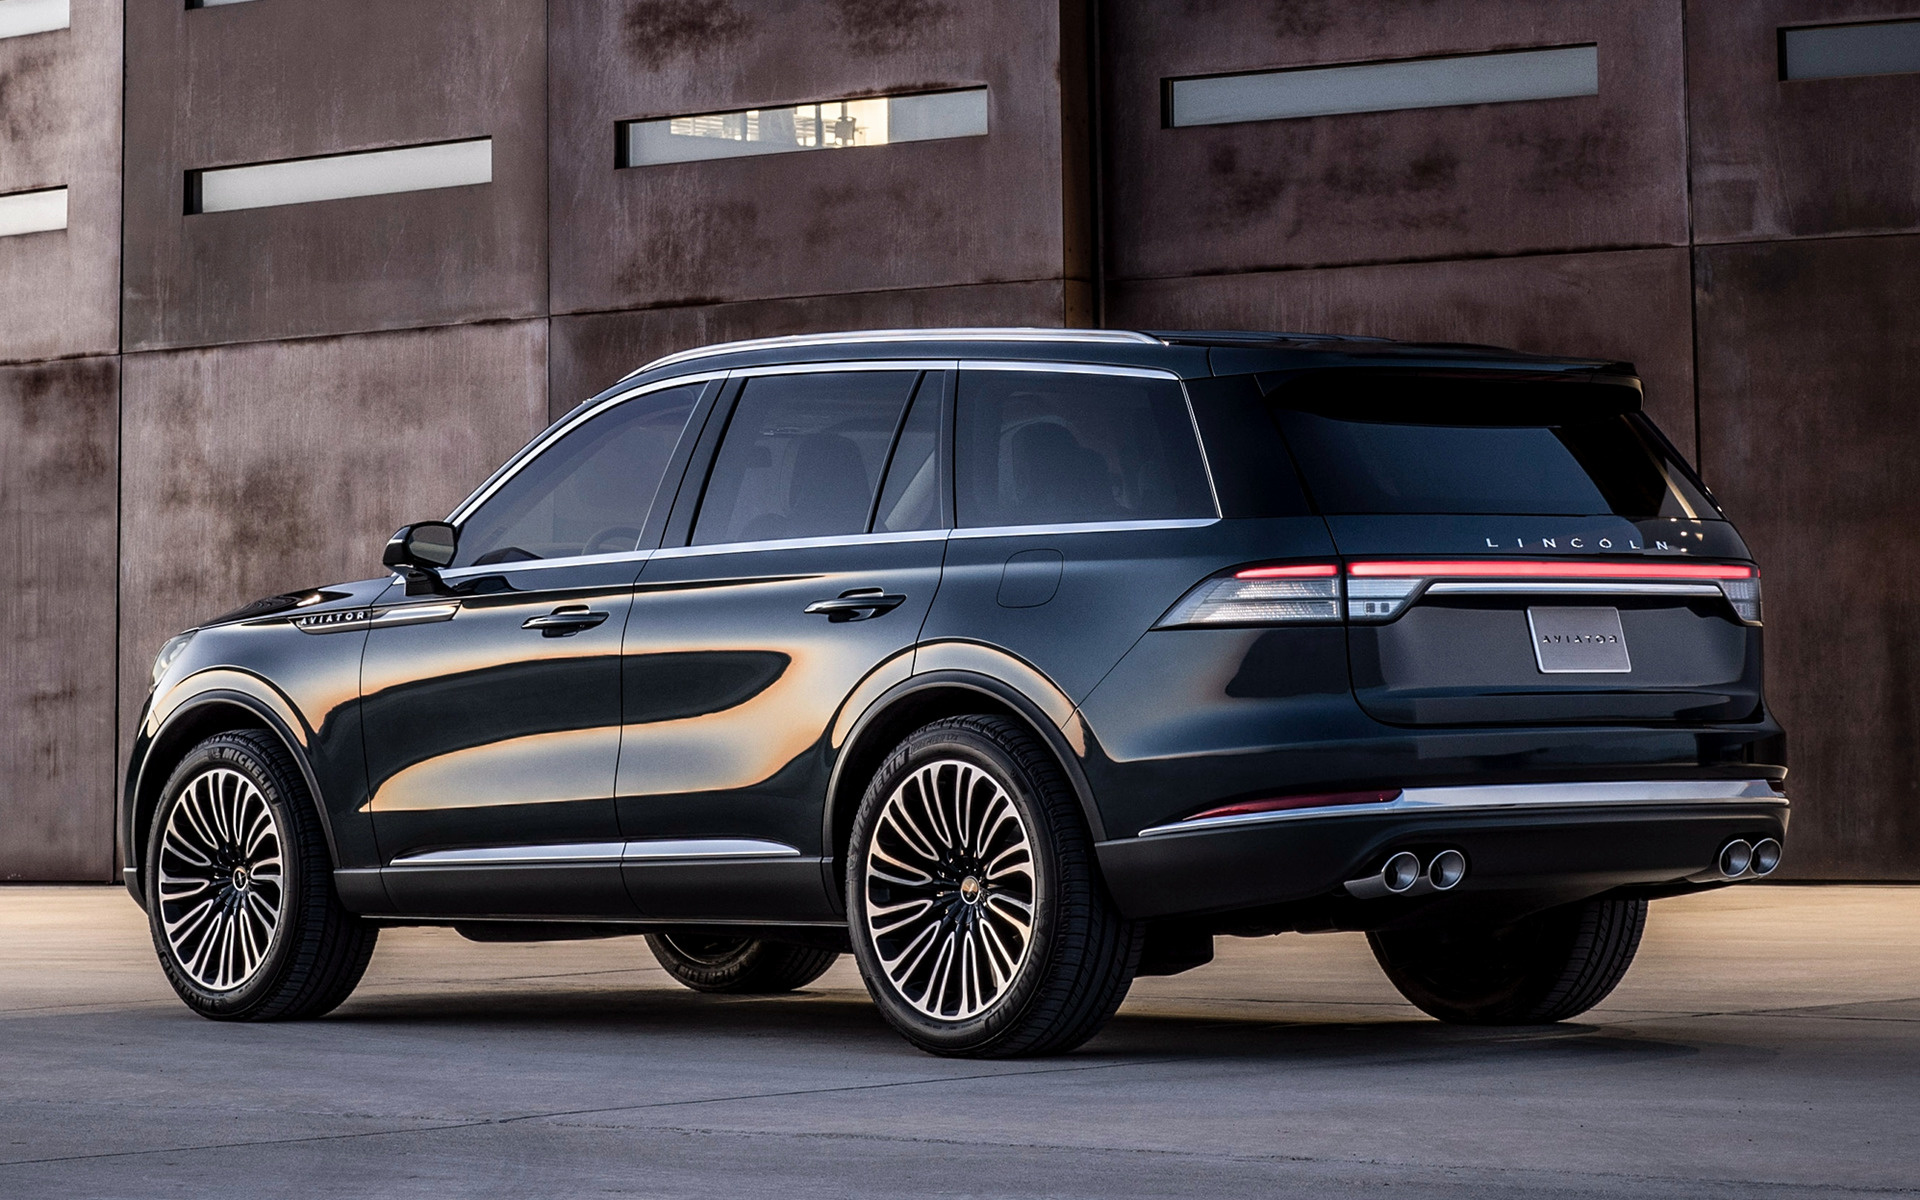 2018 Lincoln Aviator Prototype - Wallpapers and HD Images | Car Pixel